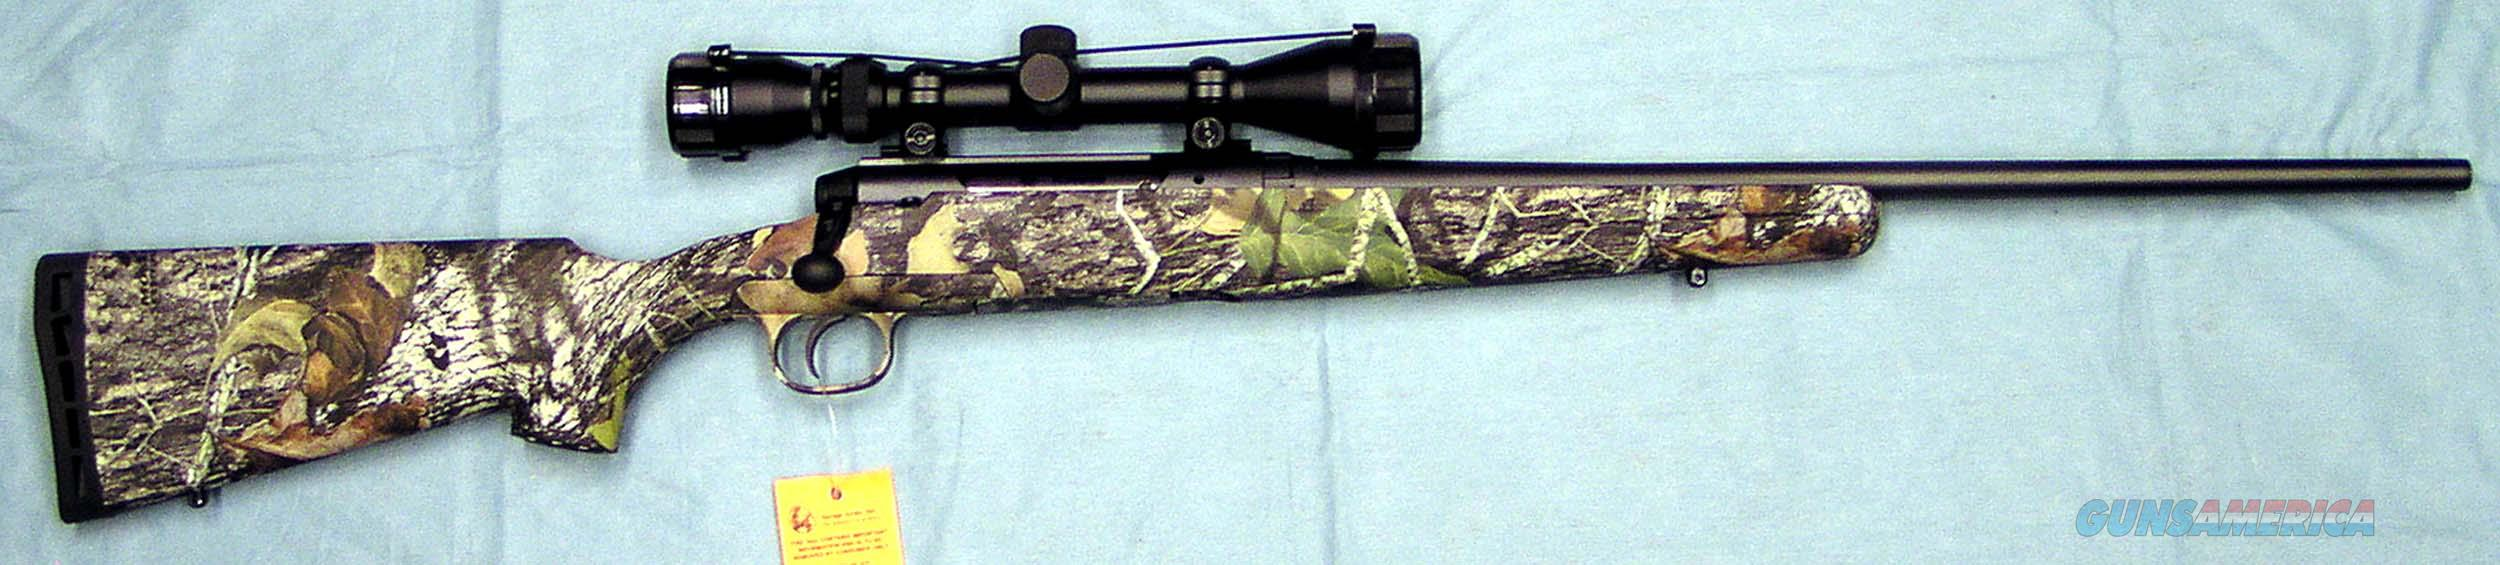 SAVAGE MODEL AXIS XP .223 CAL. RIFLE LNIB  Guns > Rifles > Savage Rifles > Axis